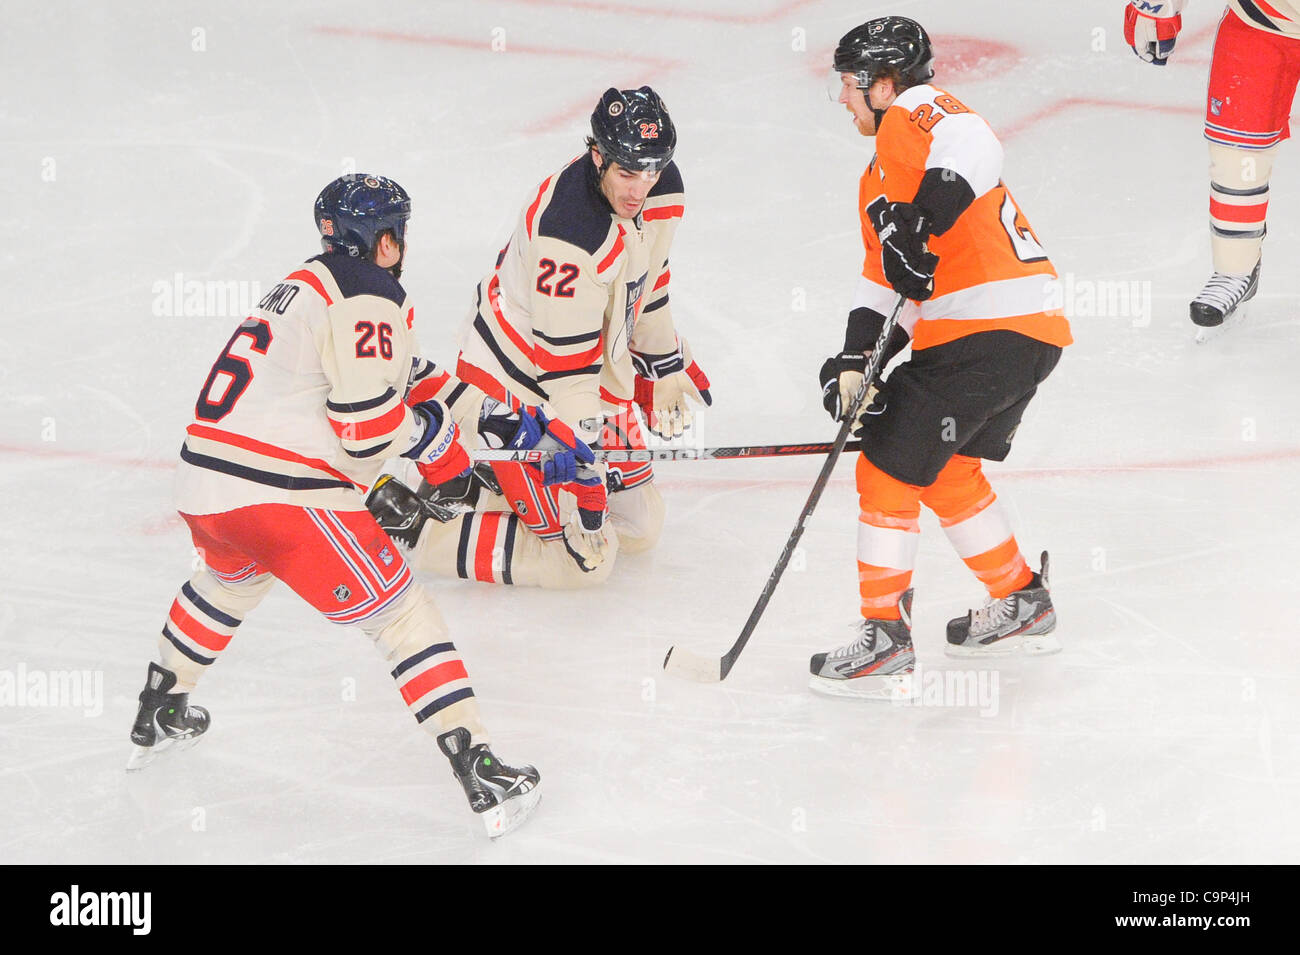 New Philadelphia Flyers Nhl Hockey Stock Photos   New Philadelphia ... 6b537f594